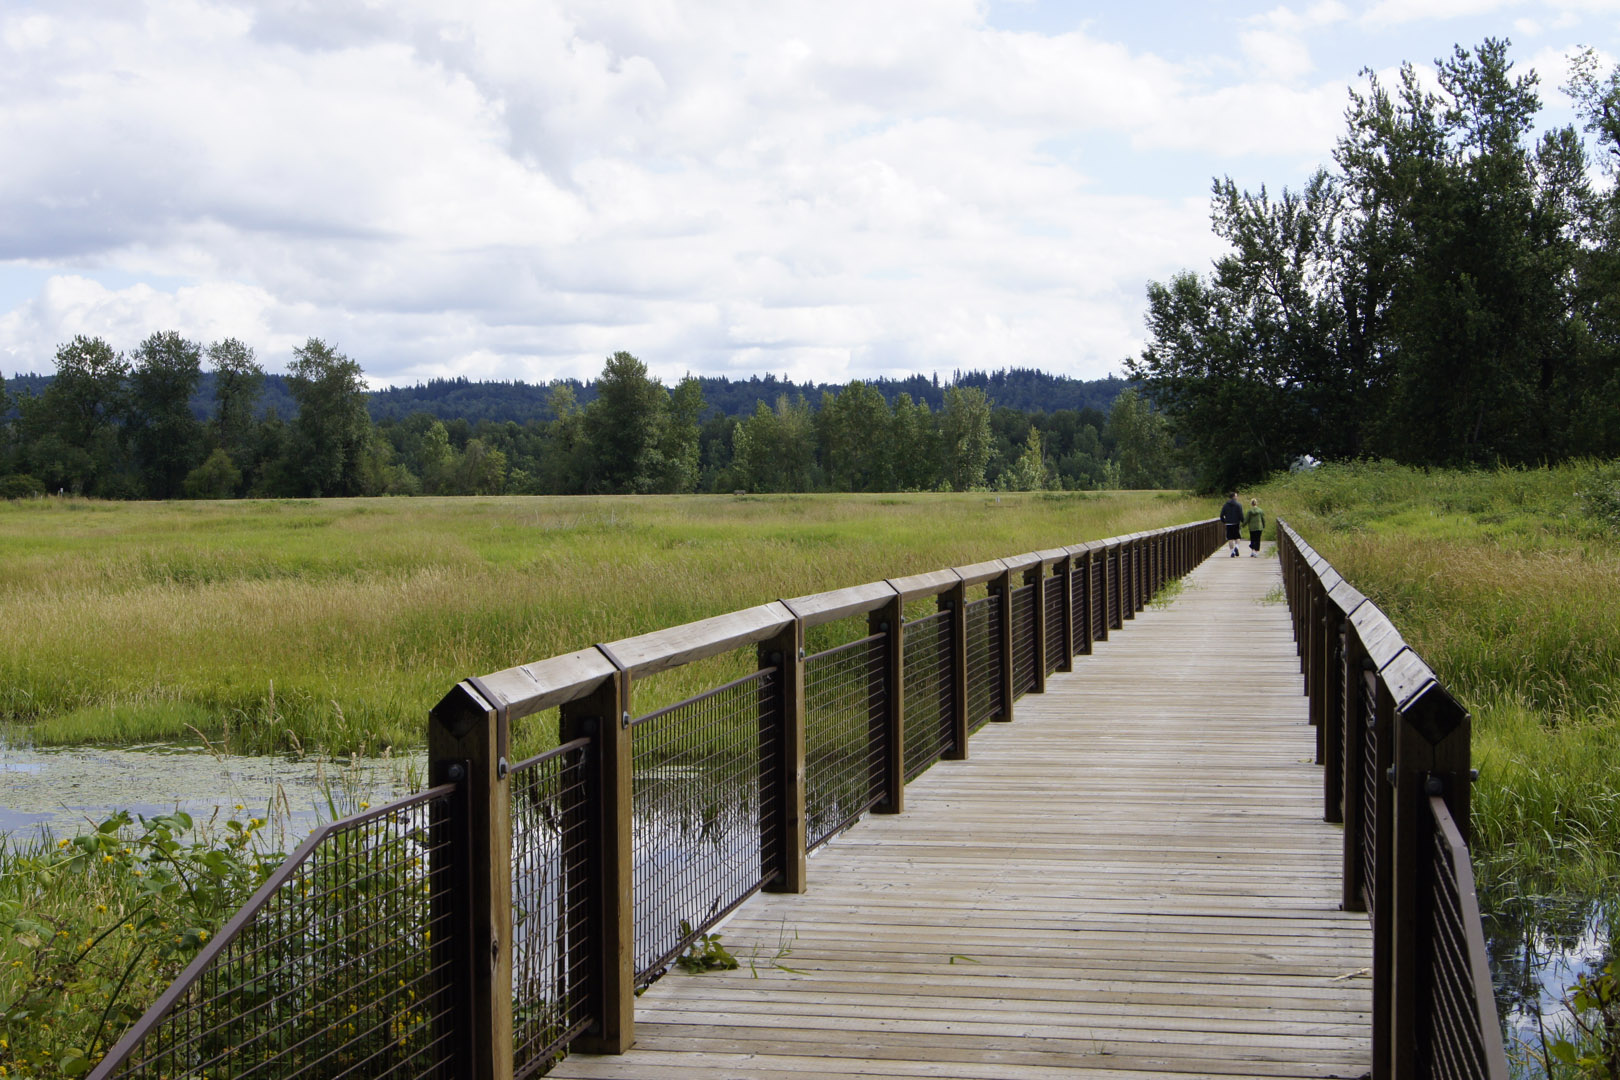 One of several bridges through the wetland areas.